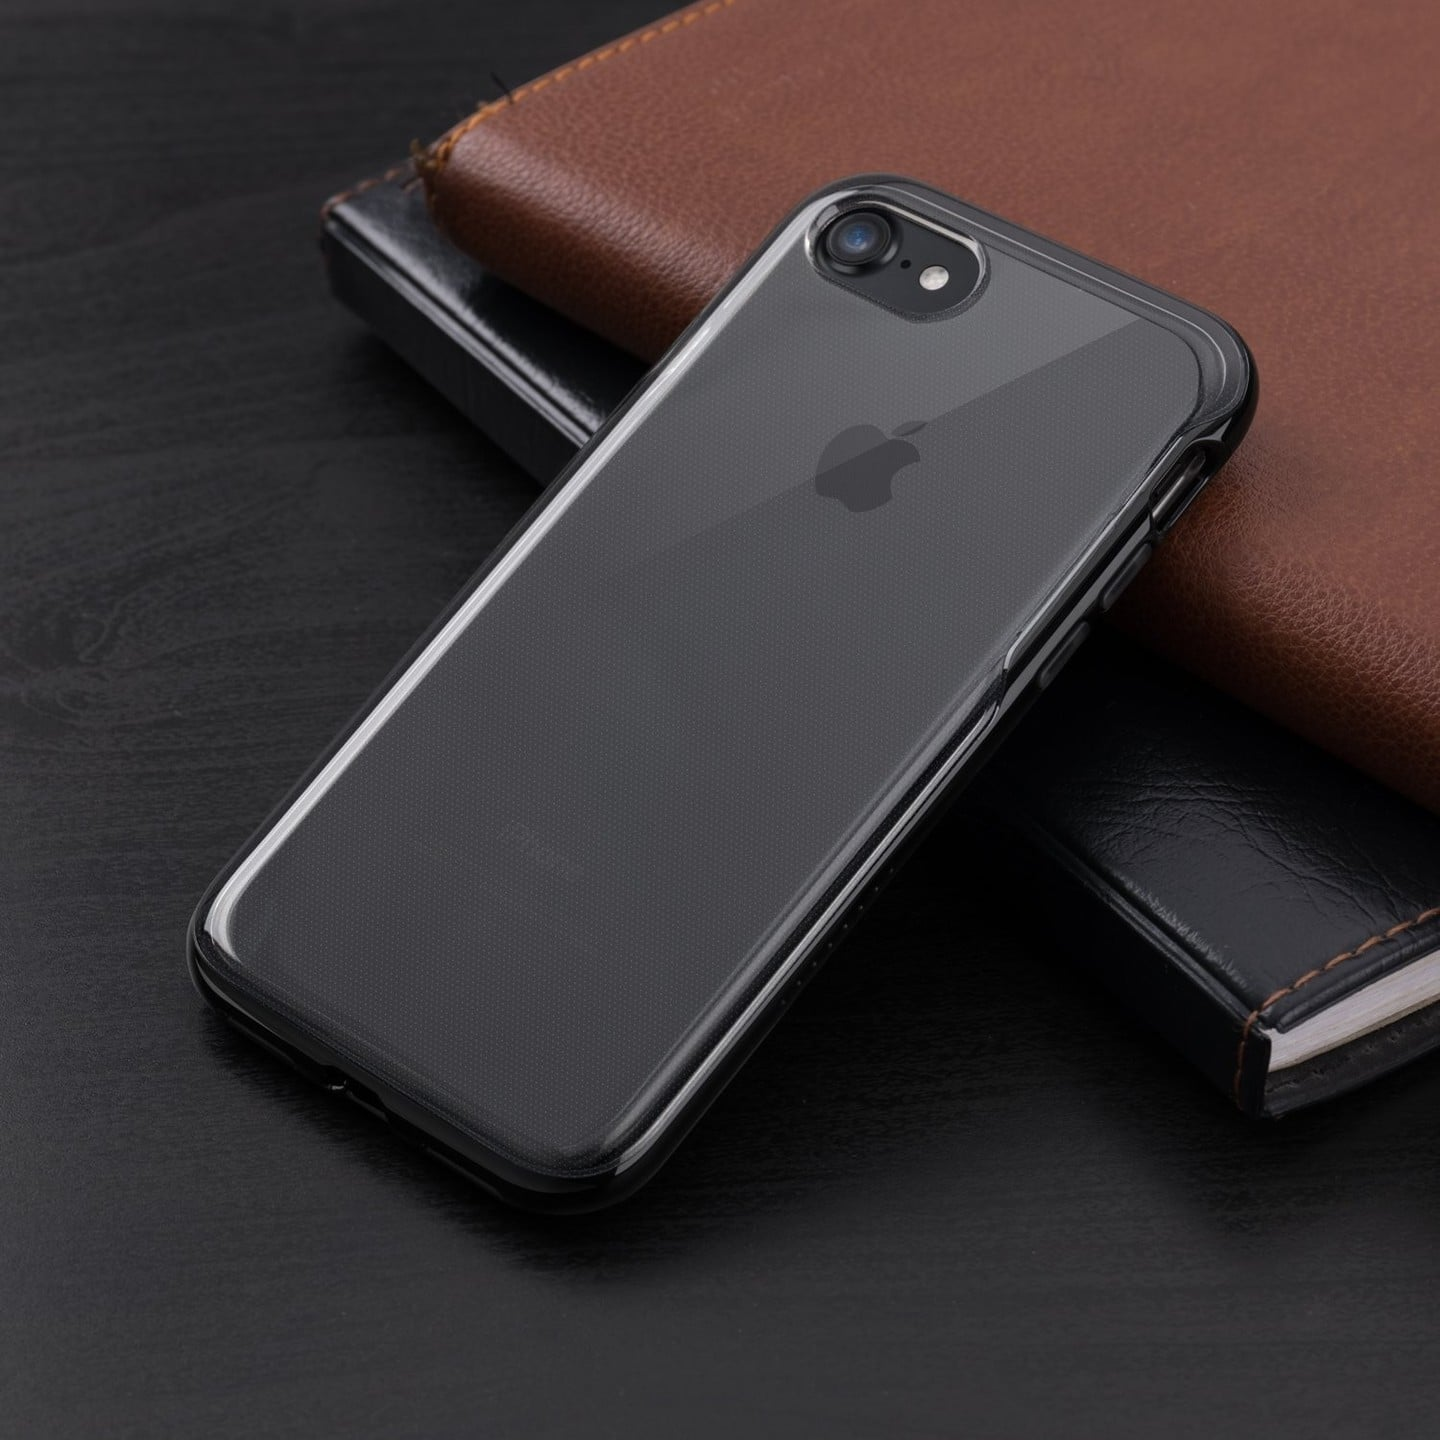 These Sweet iPhone 7 Cases are Just $7 Bucks